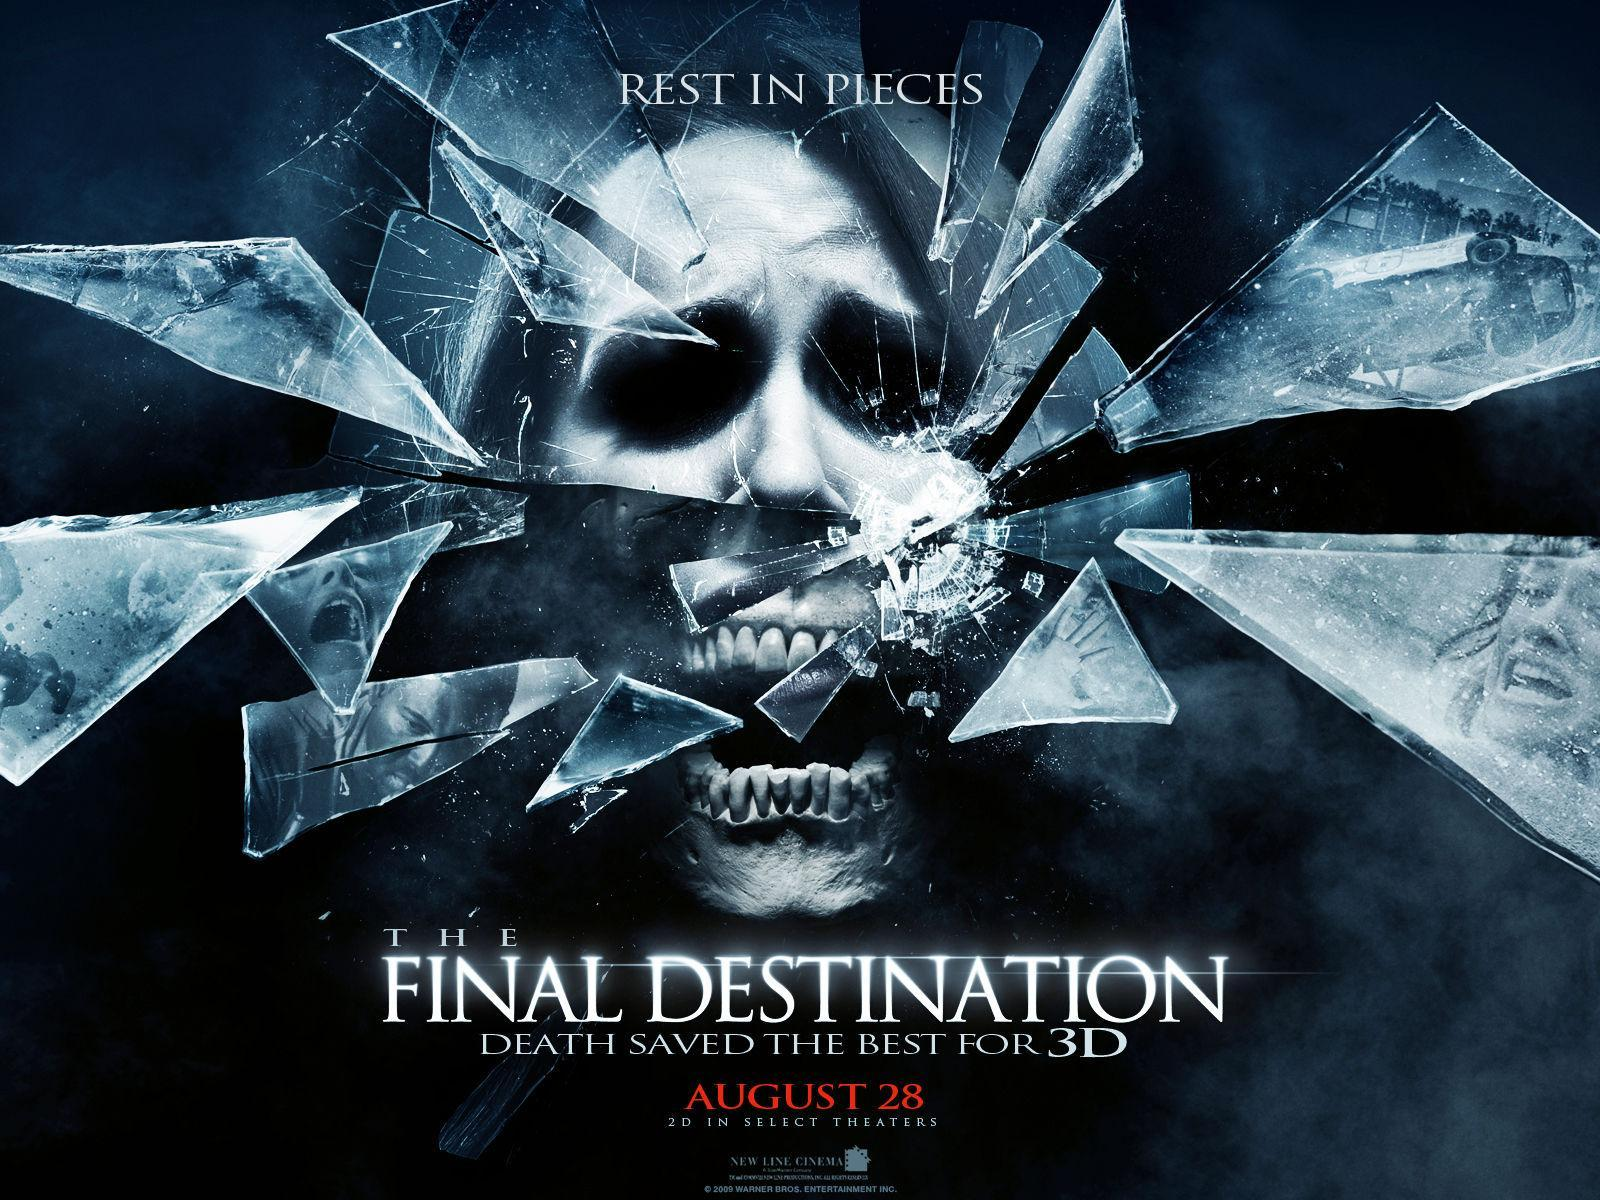 Select all of the places that people had visions of people dying at in the Final Destination movies.